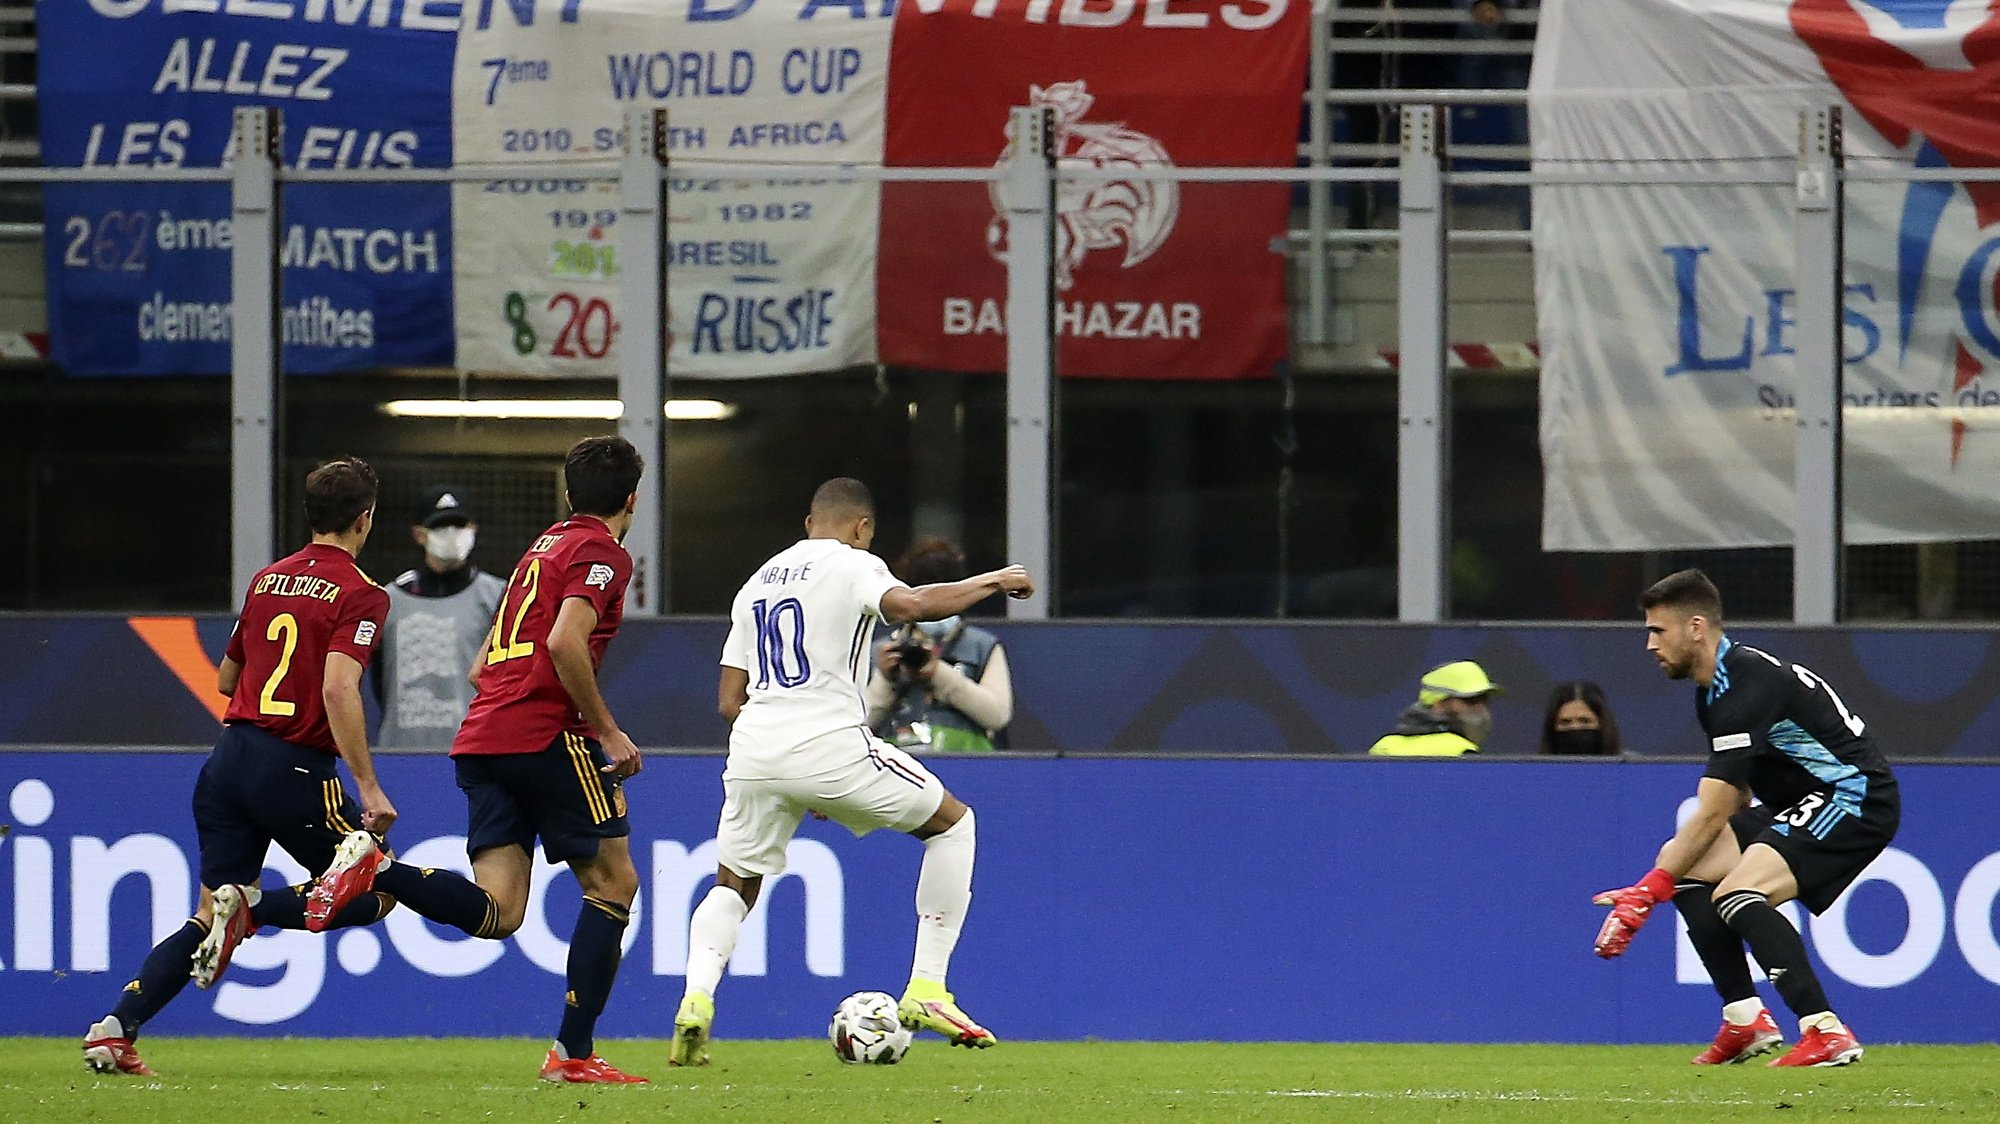 epa09517488 France's Kylian Mbappe (3-L) scores the 1-2 goal during the UEFA Nations League final soccer match between Spain and France in Milan, Italy, 10 October 2021.  EPA/MATTEO BAZZI